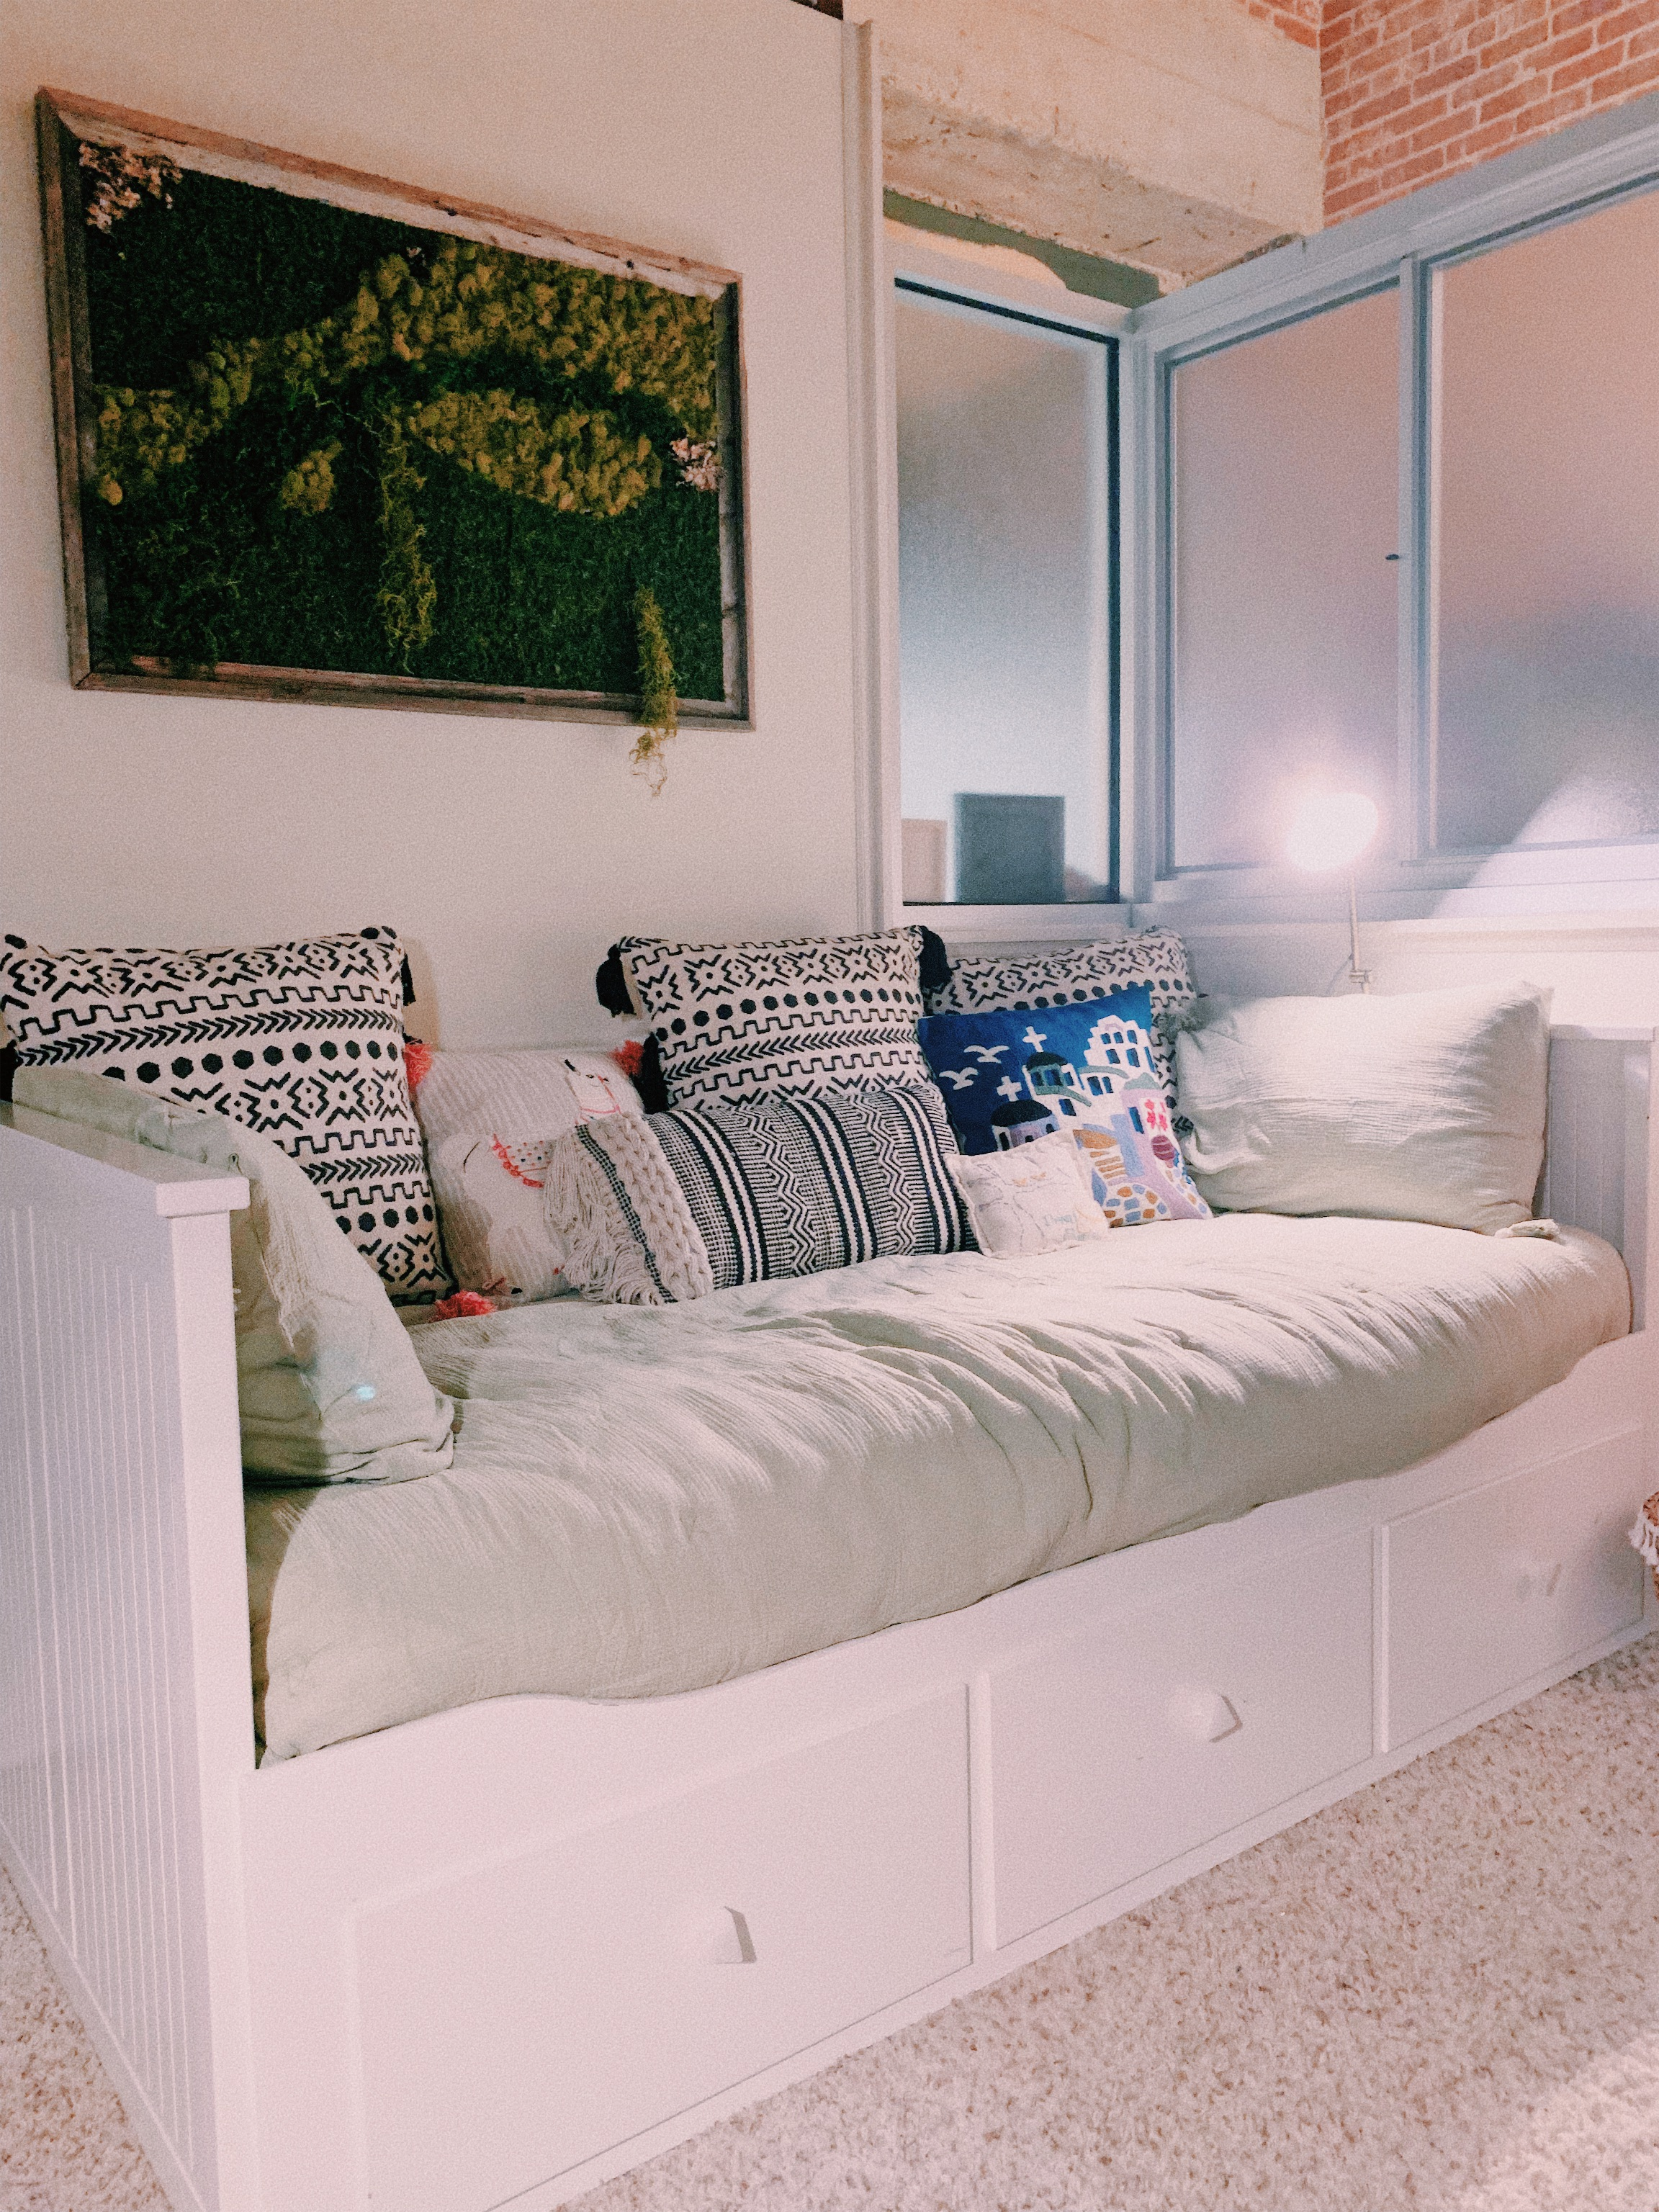 This is our daybed that pulls out into a double for guests. It's an Ikea daybed with World Market knobs.